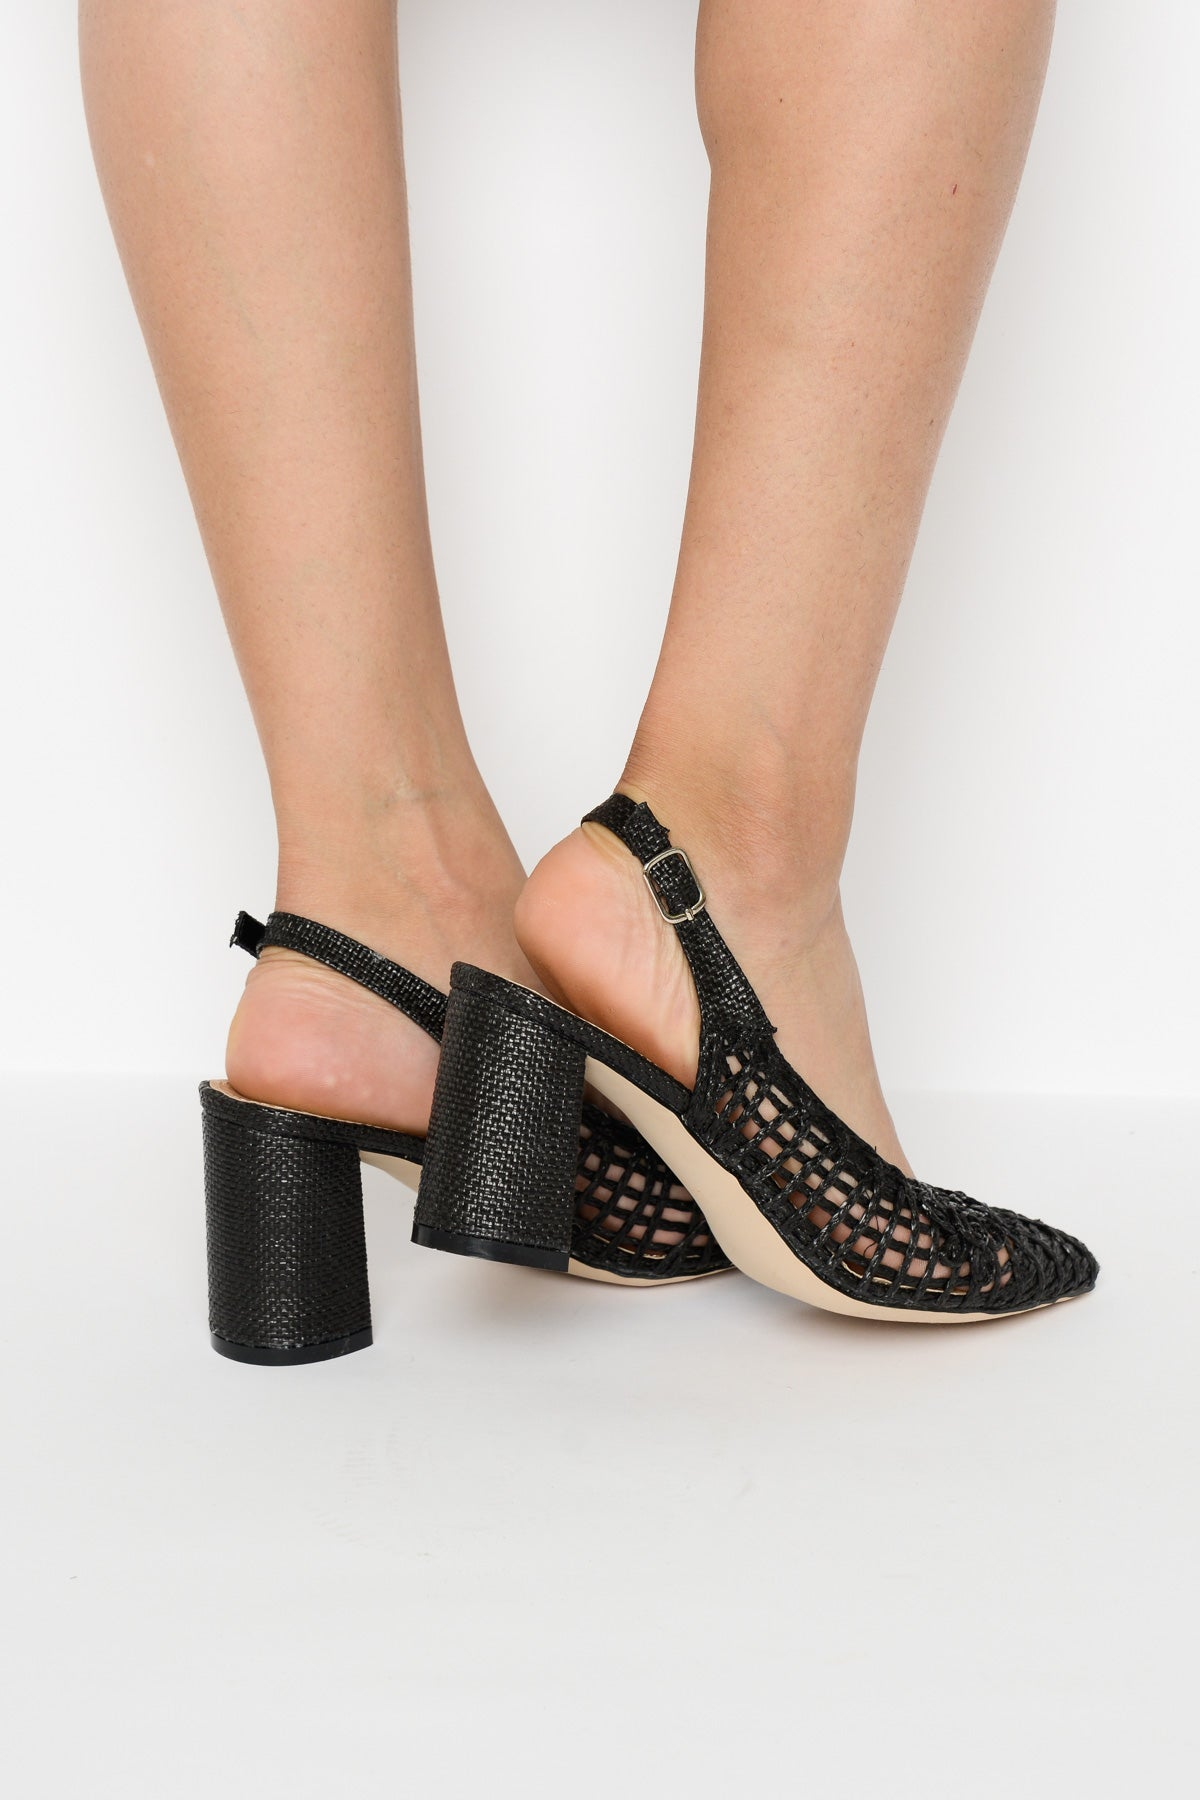 Black Open Weave Slingback Heel - Blue Bungalow